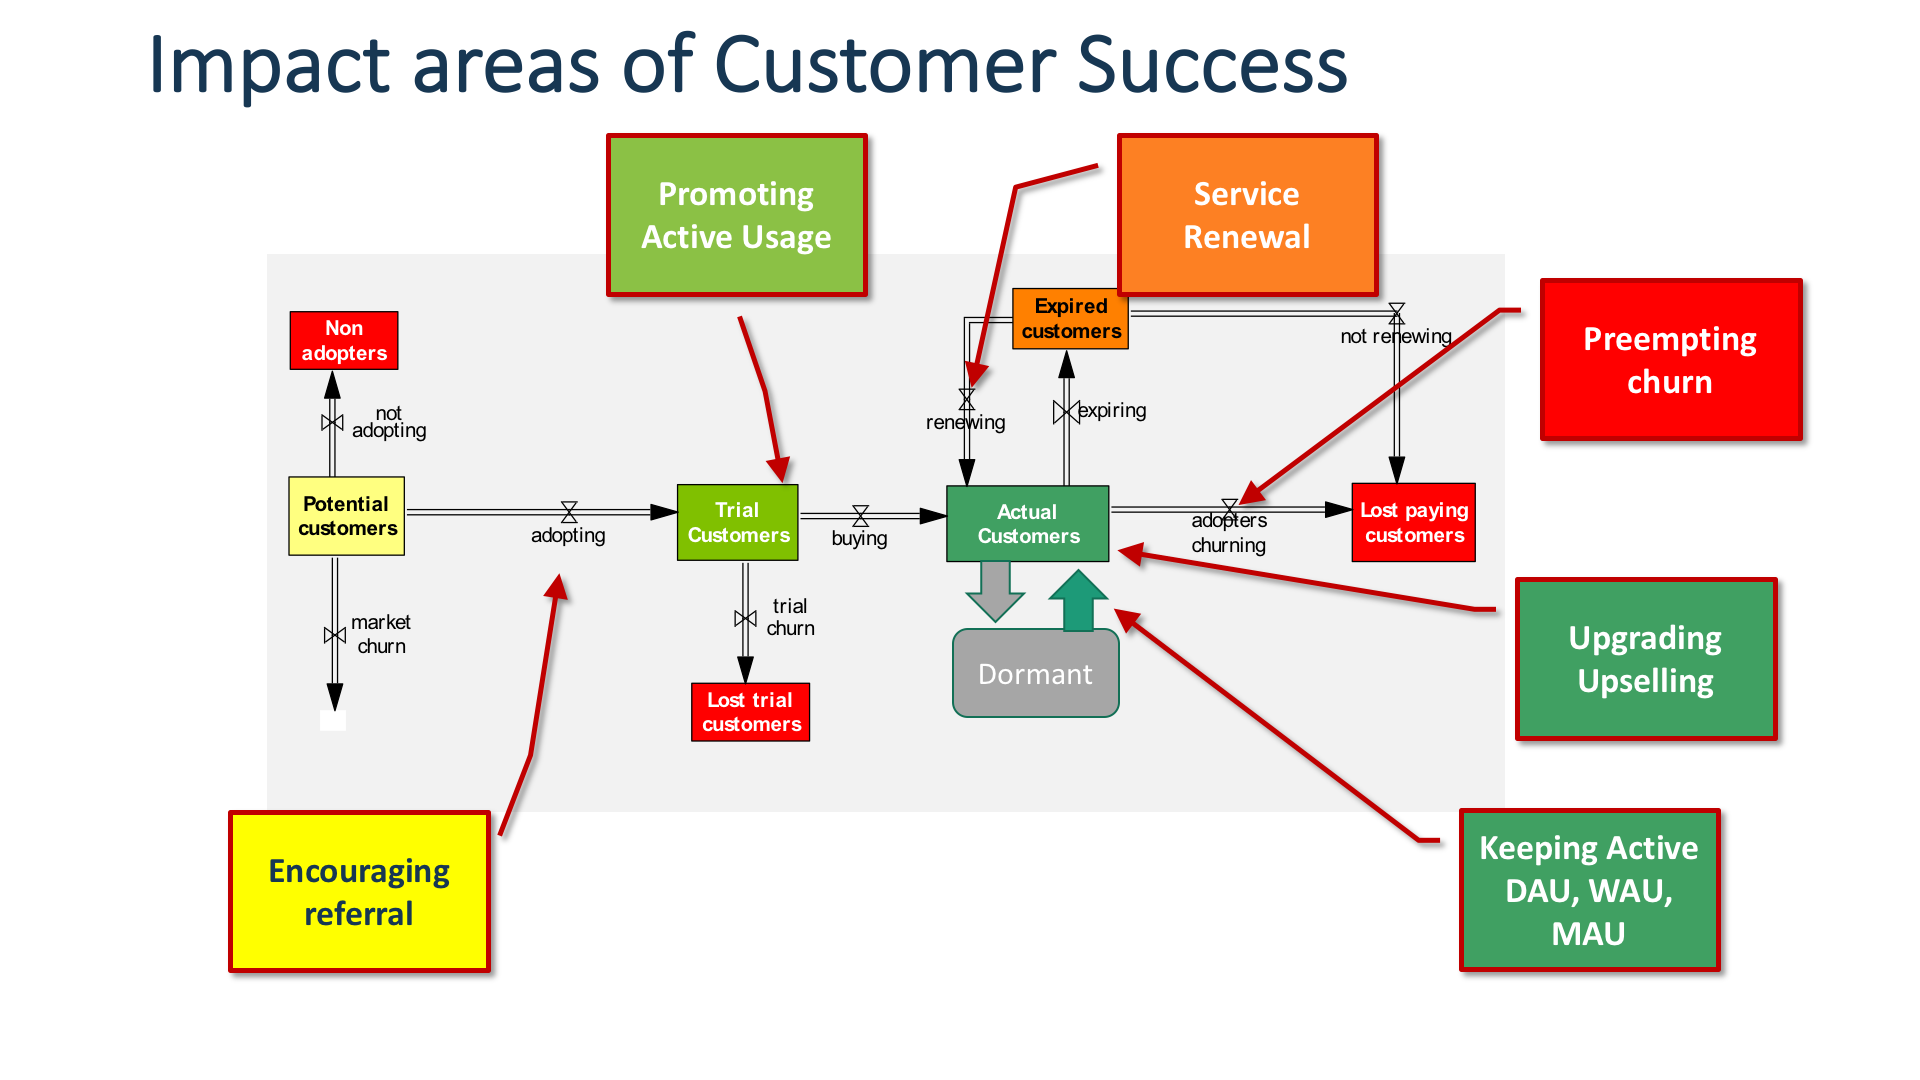 Stock and Flow diagram with areas of impact of customer success